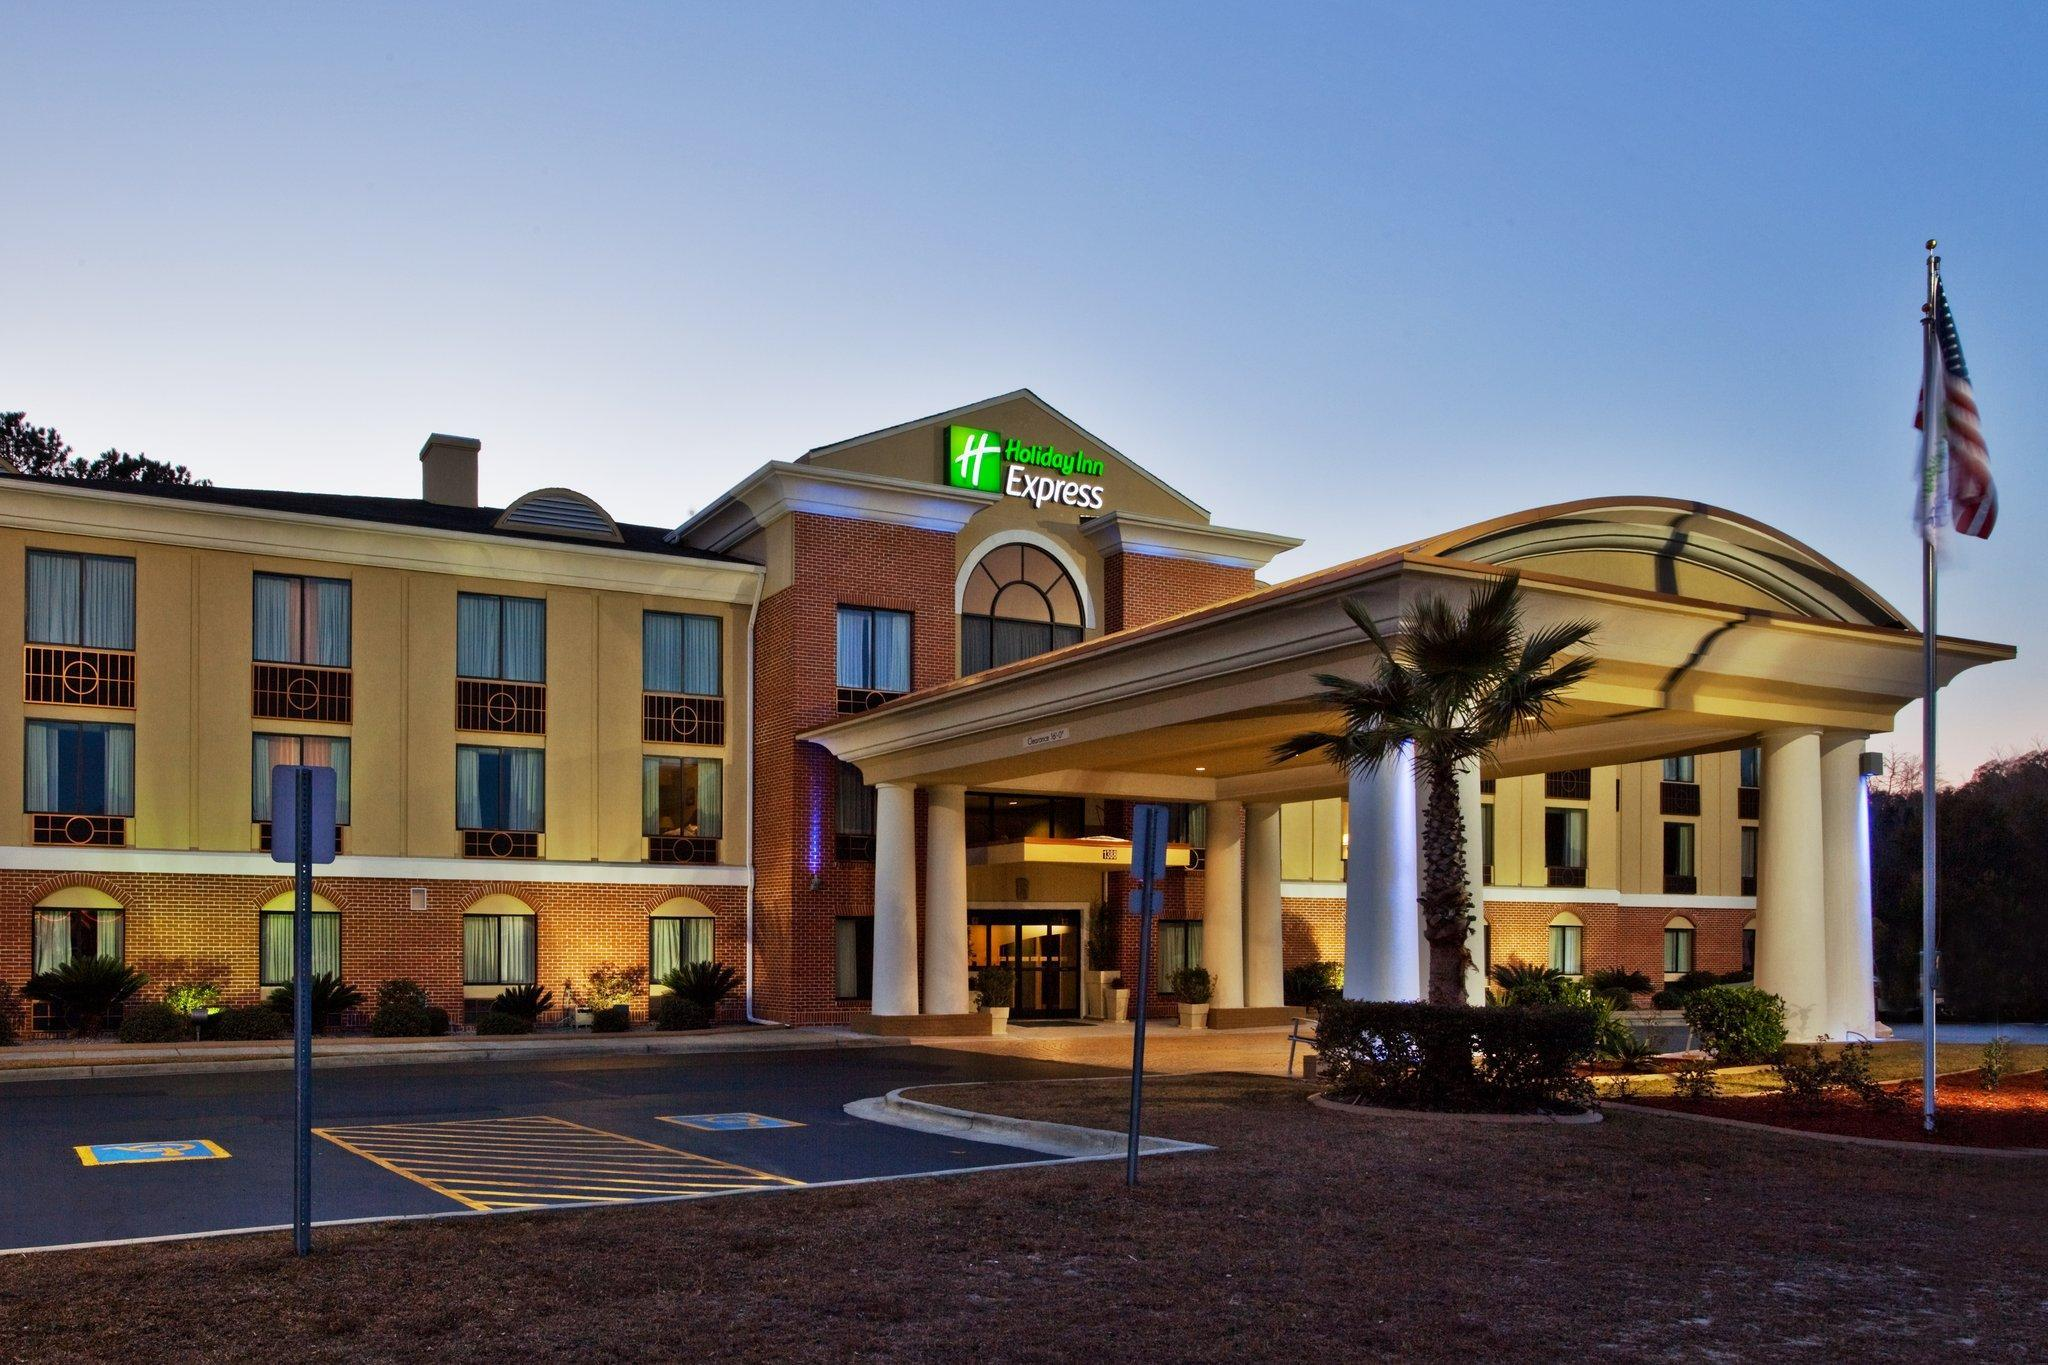 Holiday Inn Express Hotel & Suites Hinesville, Liberty